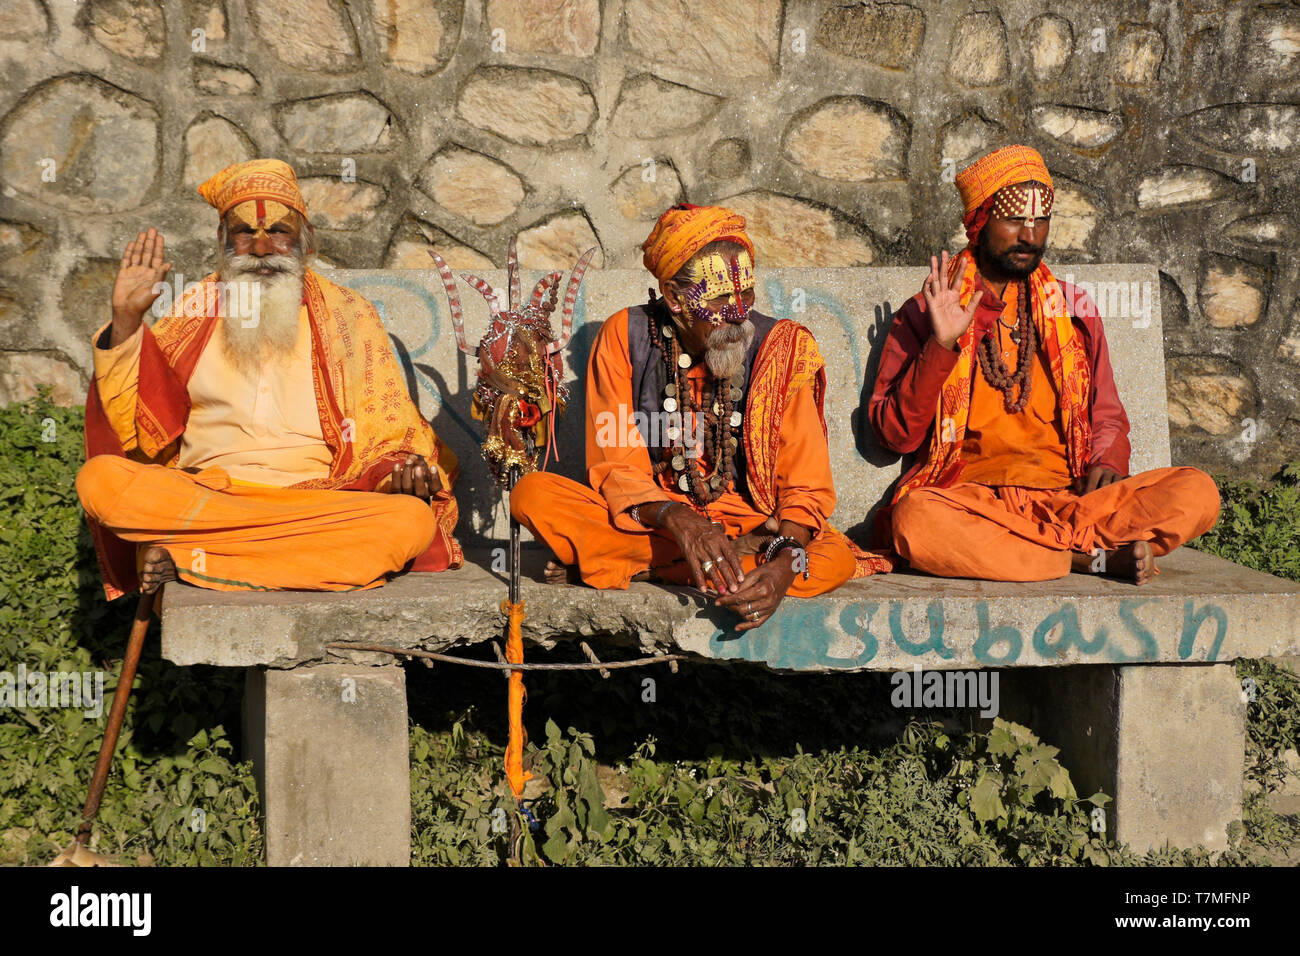 Three sadhus (holy men) with painted faces, clad in orange robes, sit on a bench at Pashupatinath Hindu temple, Kathmandu Valley, Nepal - Stock Image